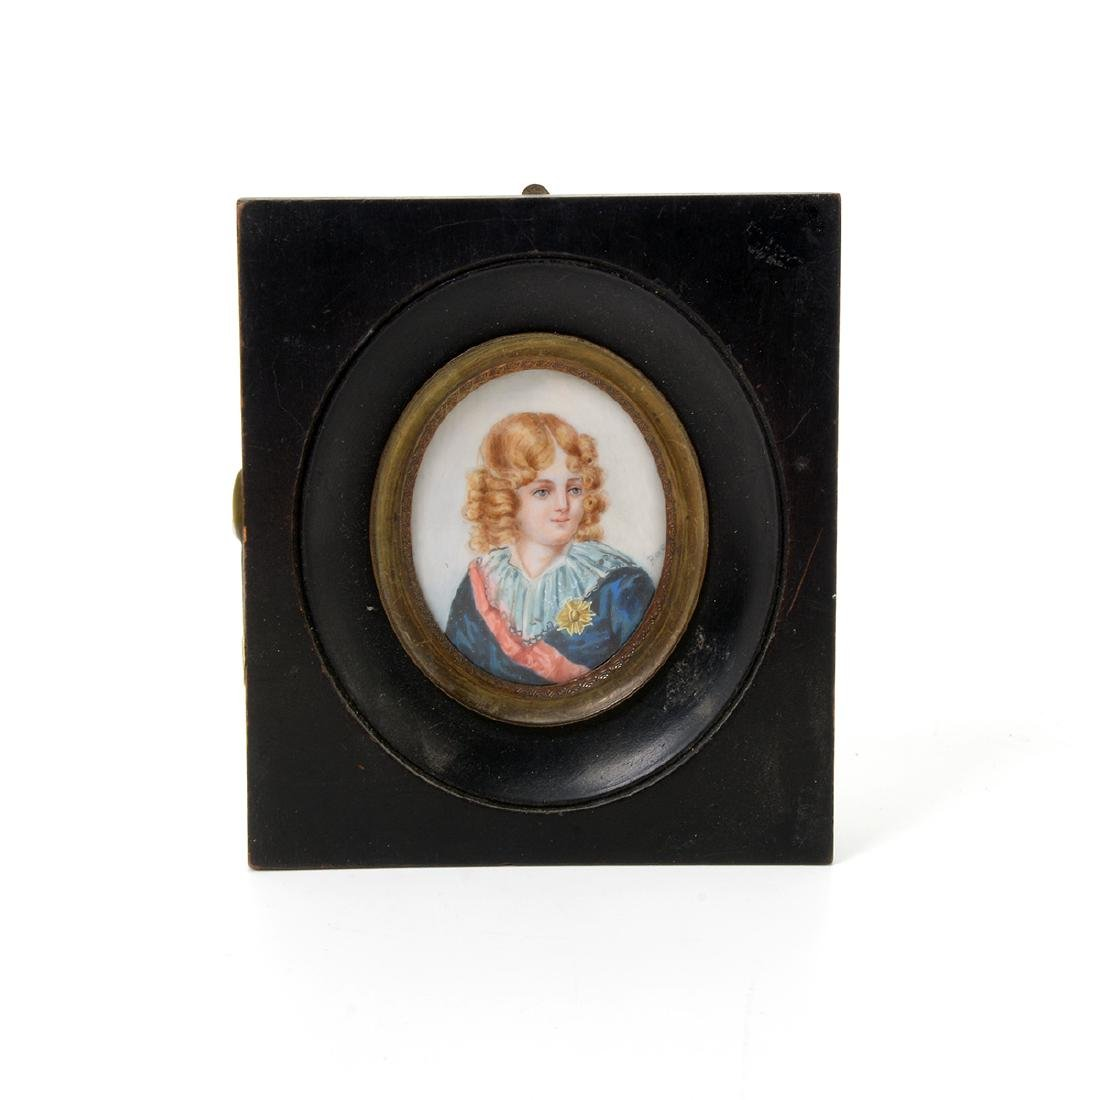 Nine Miniature Portraits of Men Including Blue Boy - 10